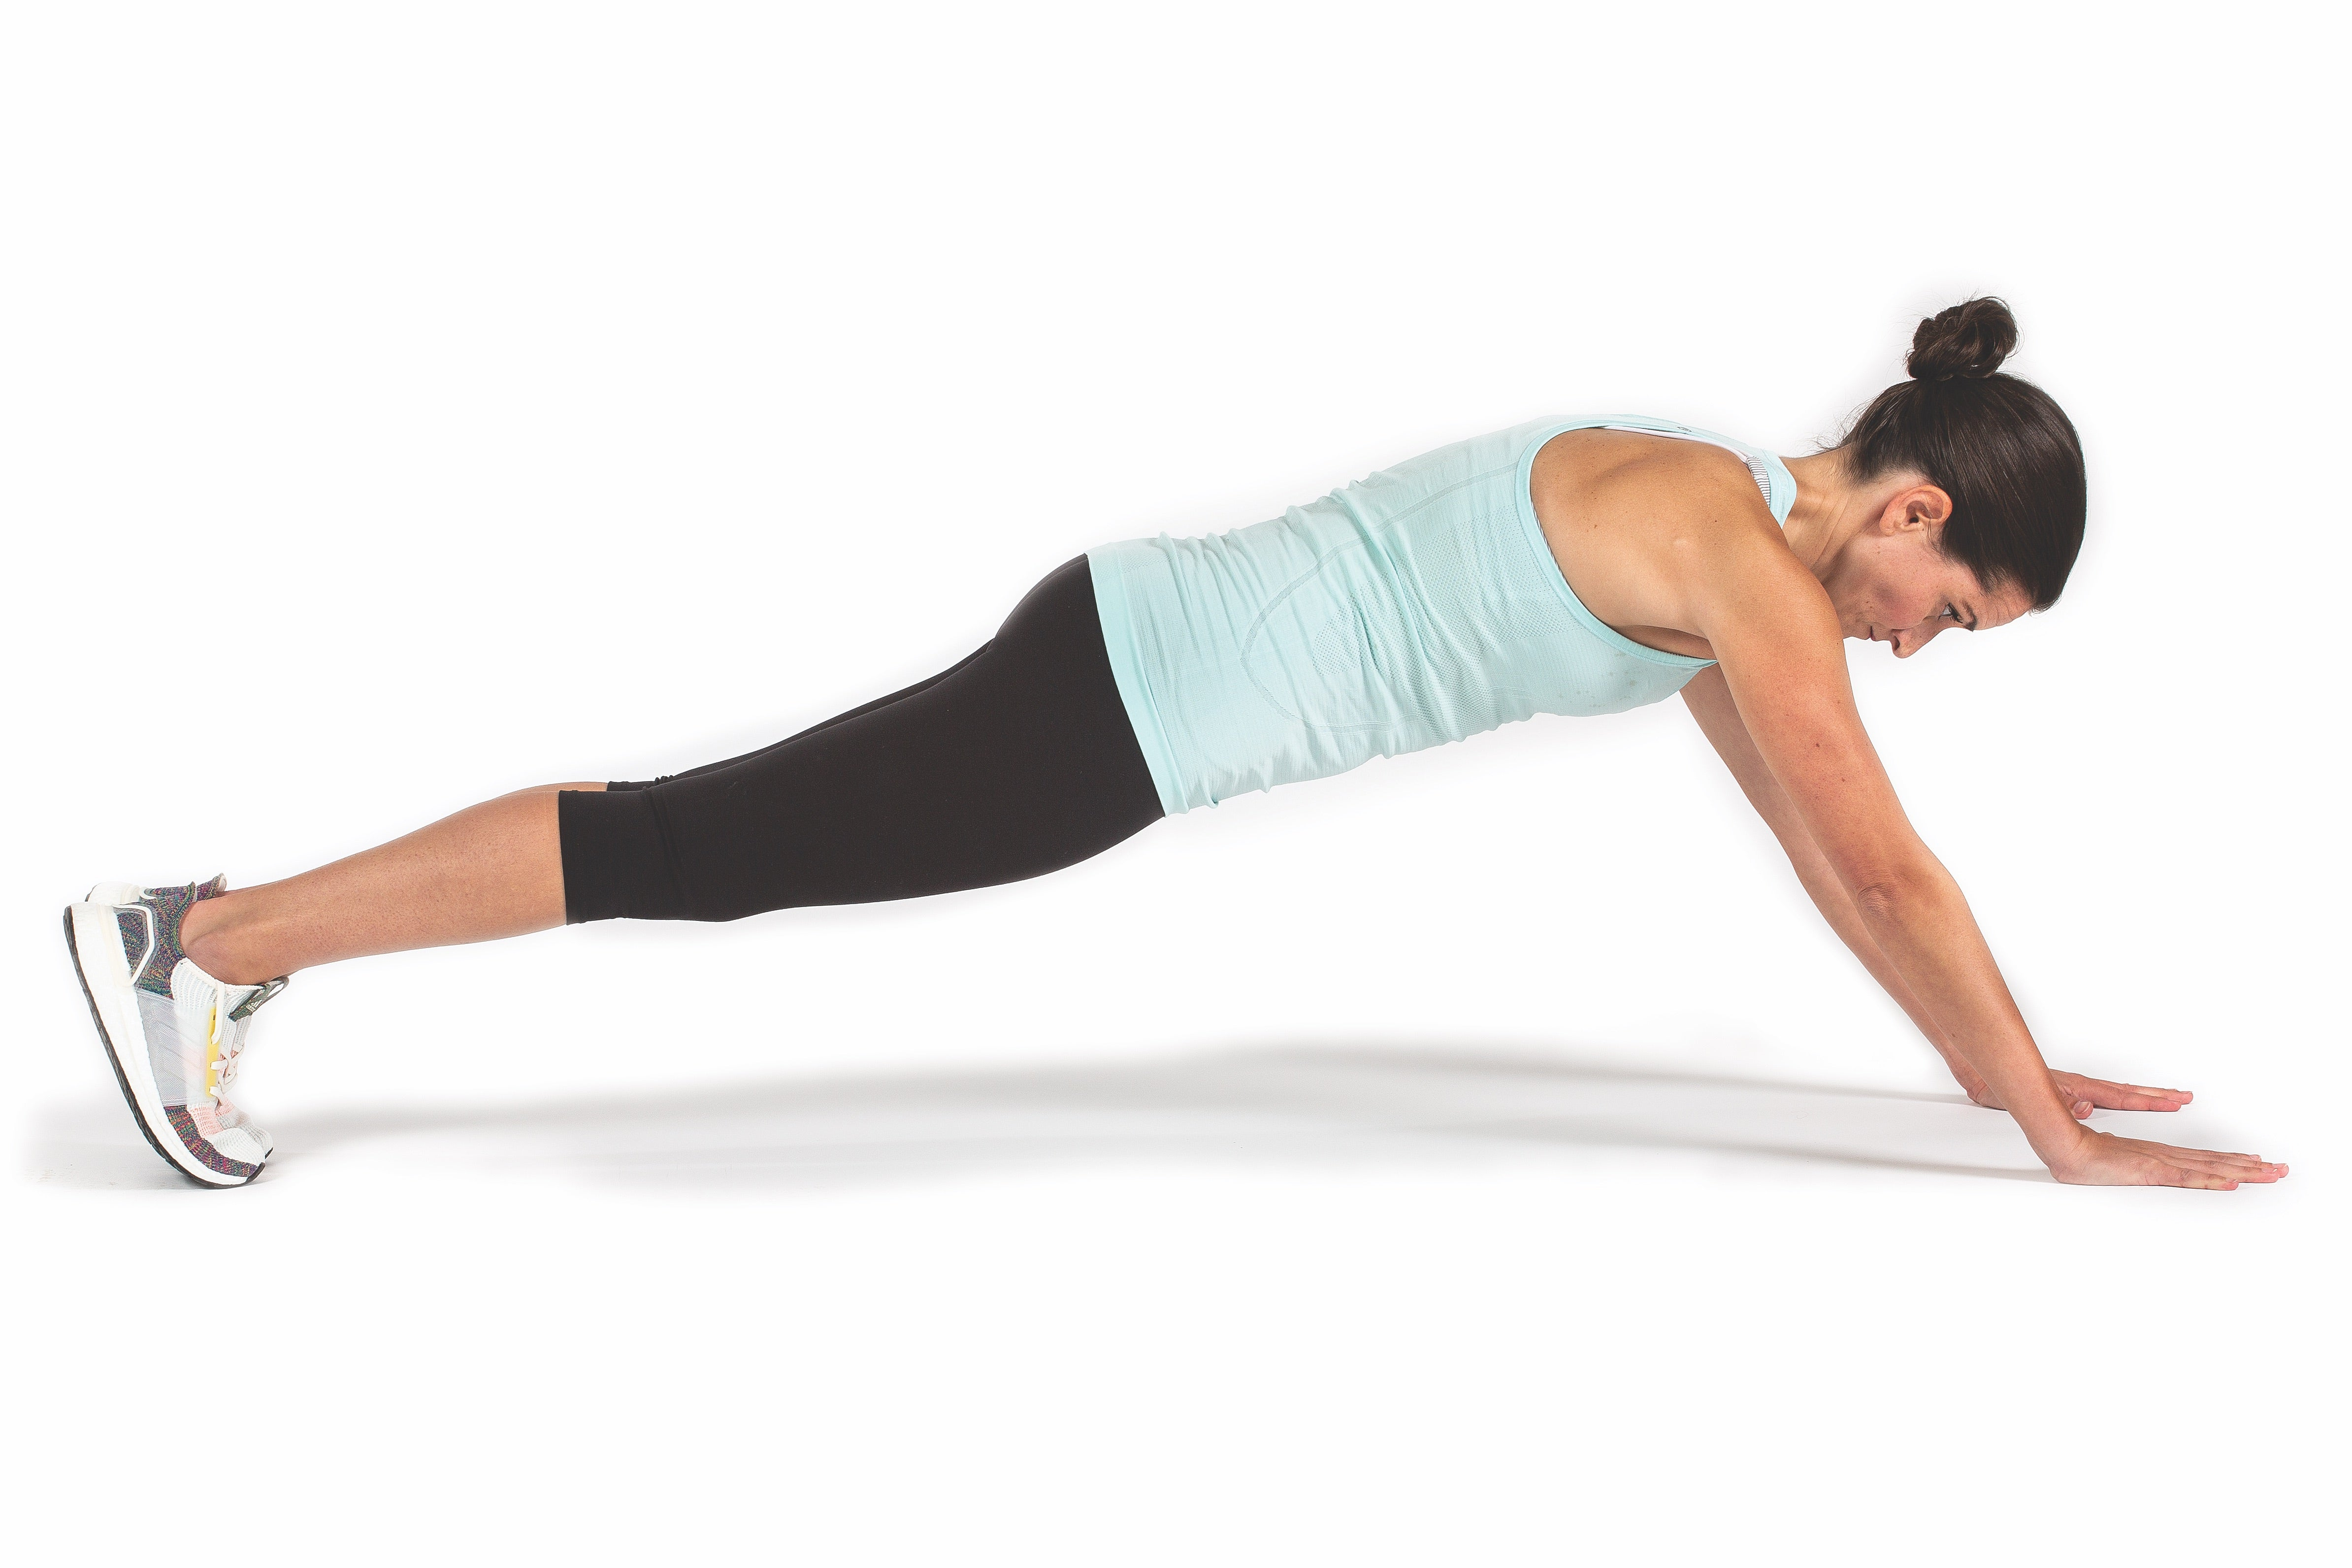 extended-plank-position-three